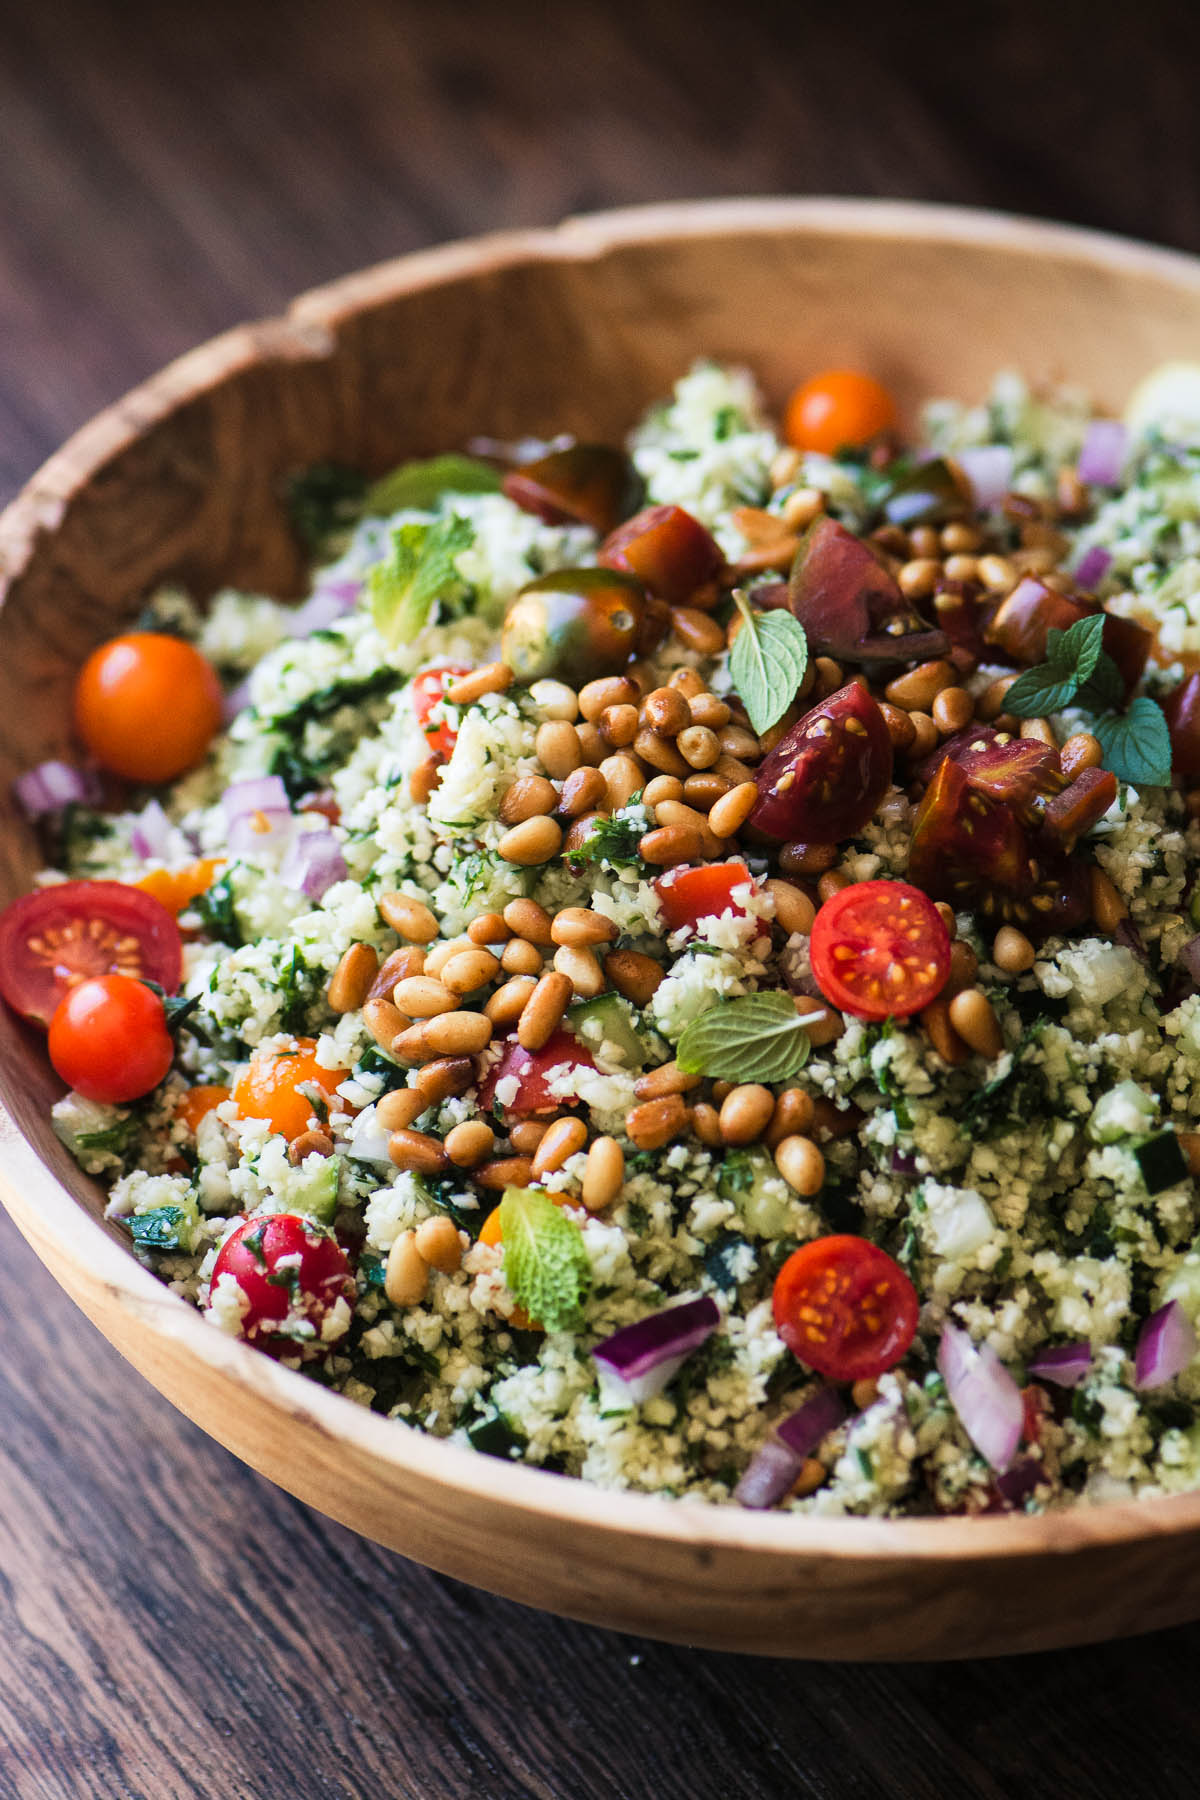 cauliflower rice tabbouleh in a wooden bowl topped with toasted pine nuts